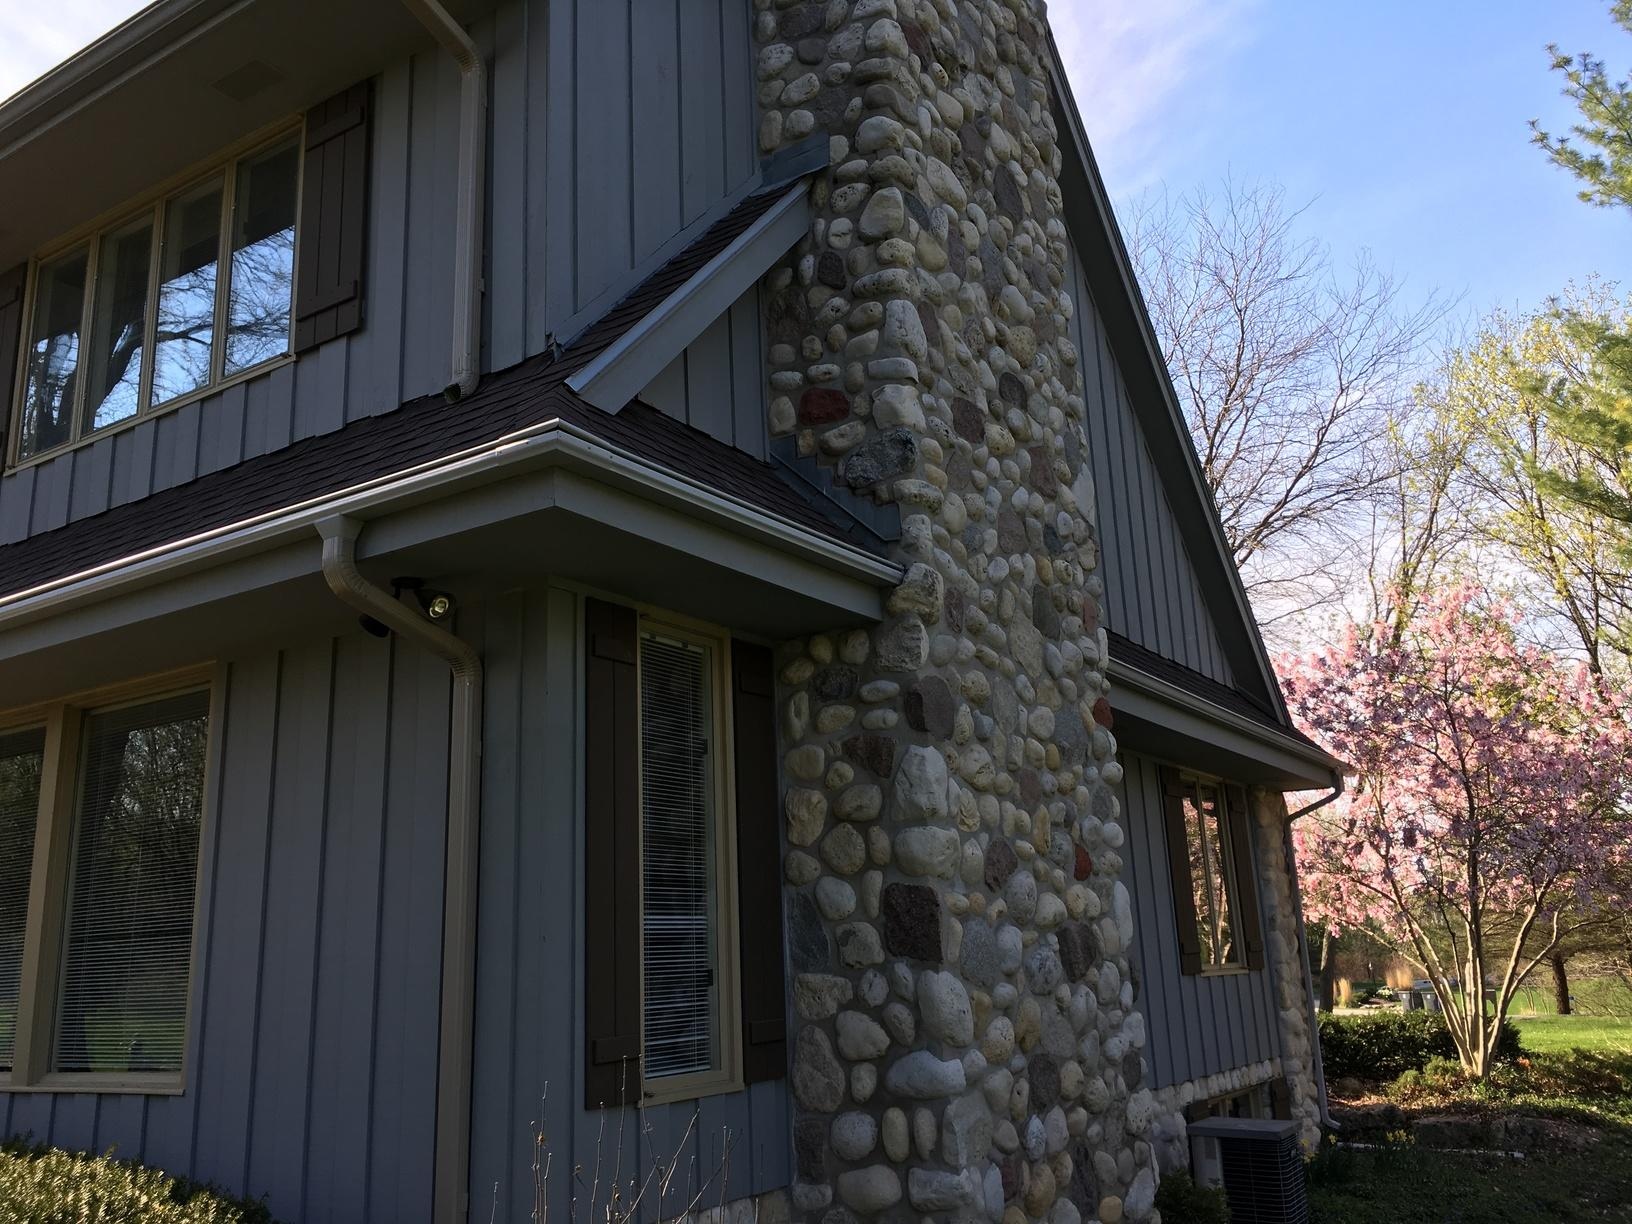 Grey LeafGuard Gutters Installed on a Home in Sheboygan, WI - After Photo